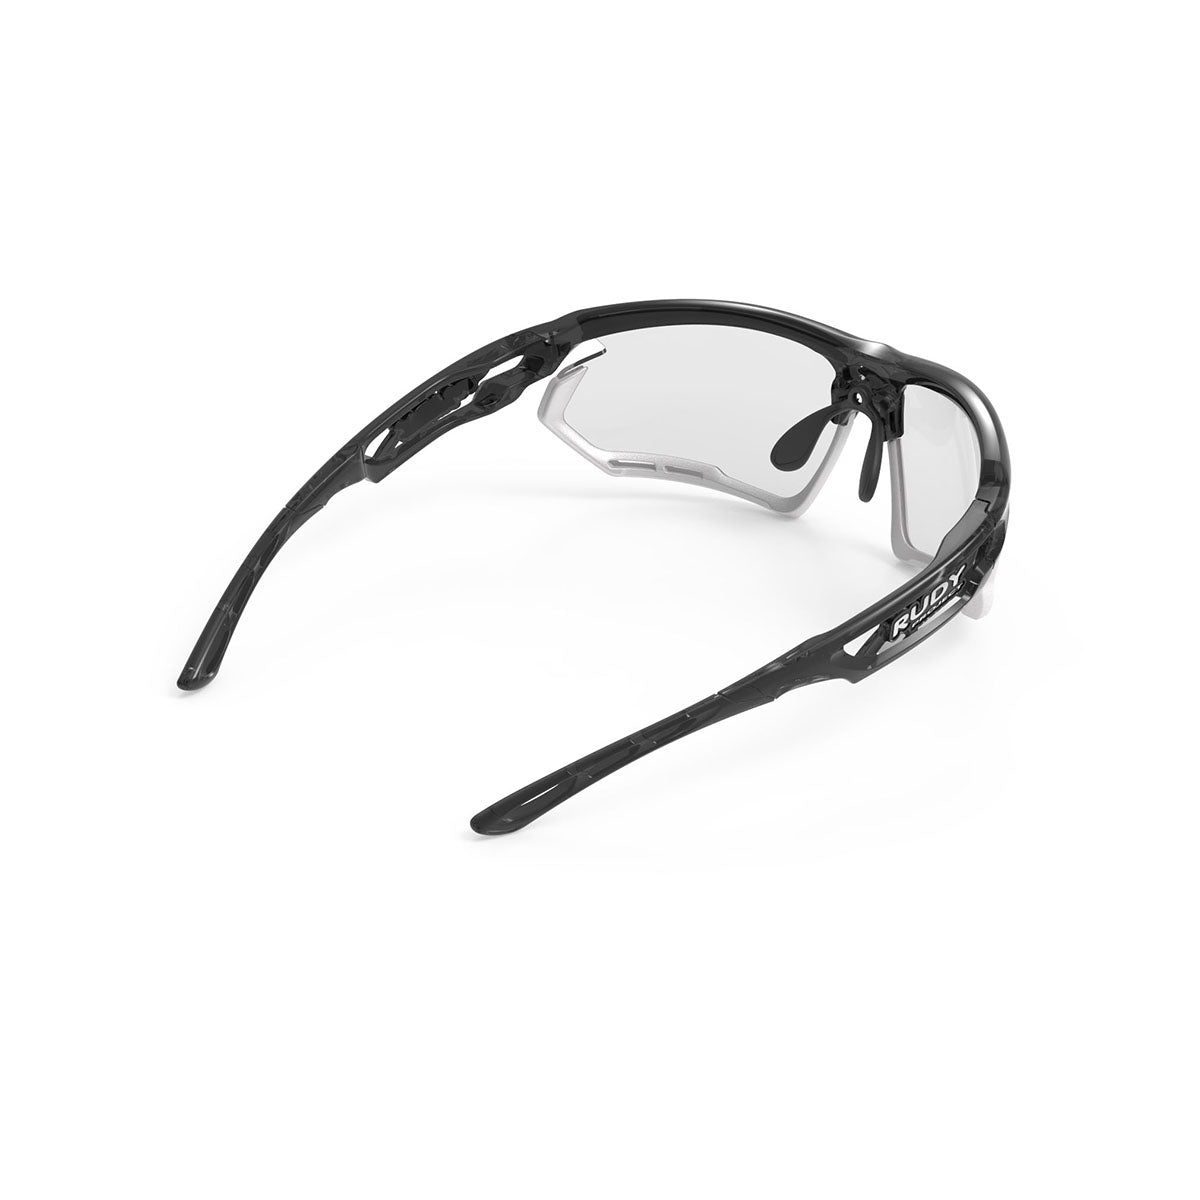 Rudy Project - Fotonyk - frame color: Crystal Graphite - lens color: ImpactX-2 Photochromic Clear to Black - Bumper Color: White - photo angle: Top Back Angle Variant Hover Image